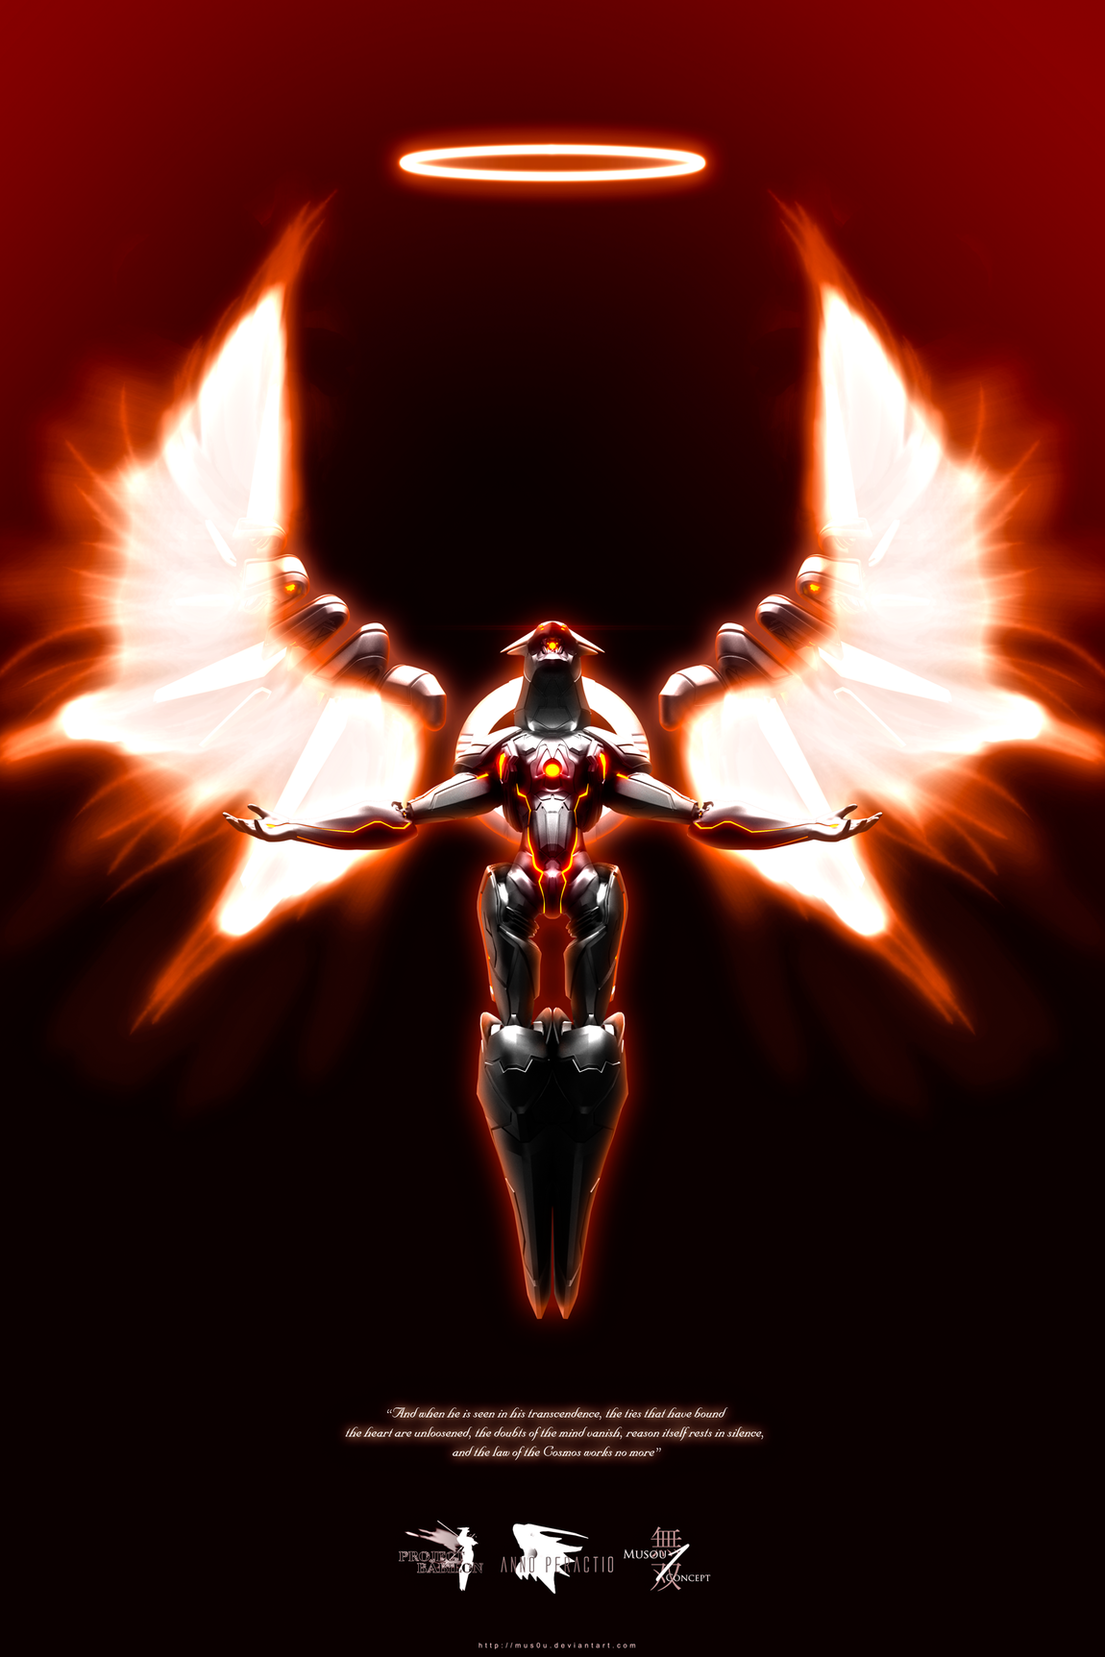 Zone Of The Enders The Unofficial Site View Topic Freedom Project Orbital Frame Apophis Zone Of The Enders Evangelion Deviantart